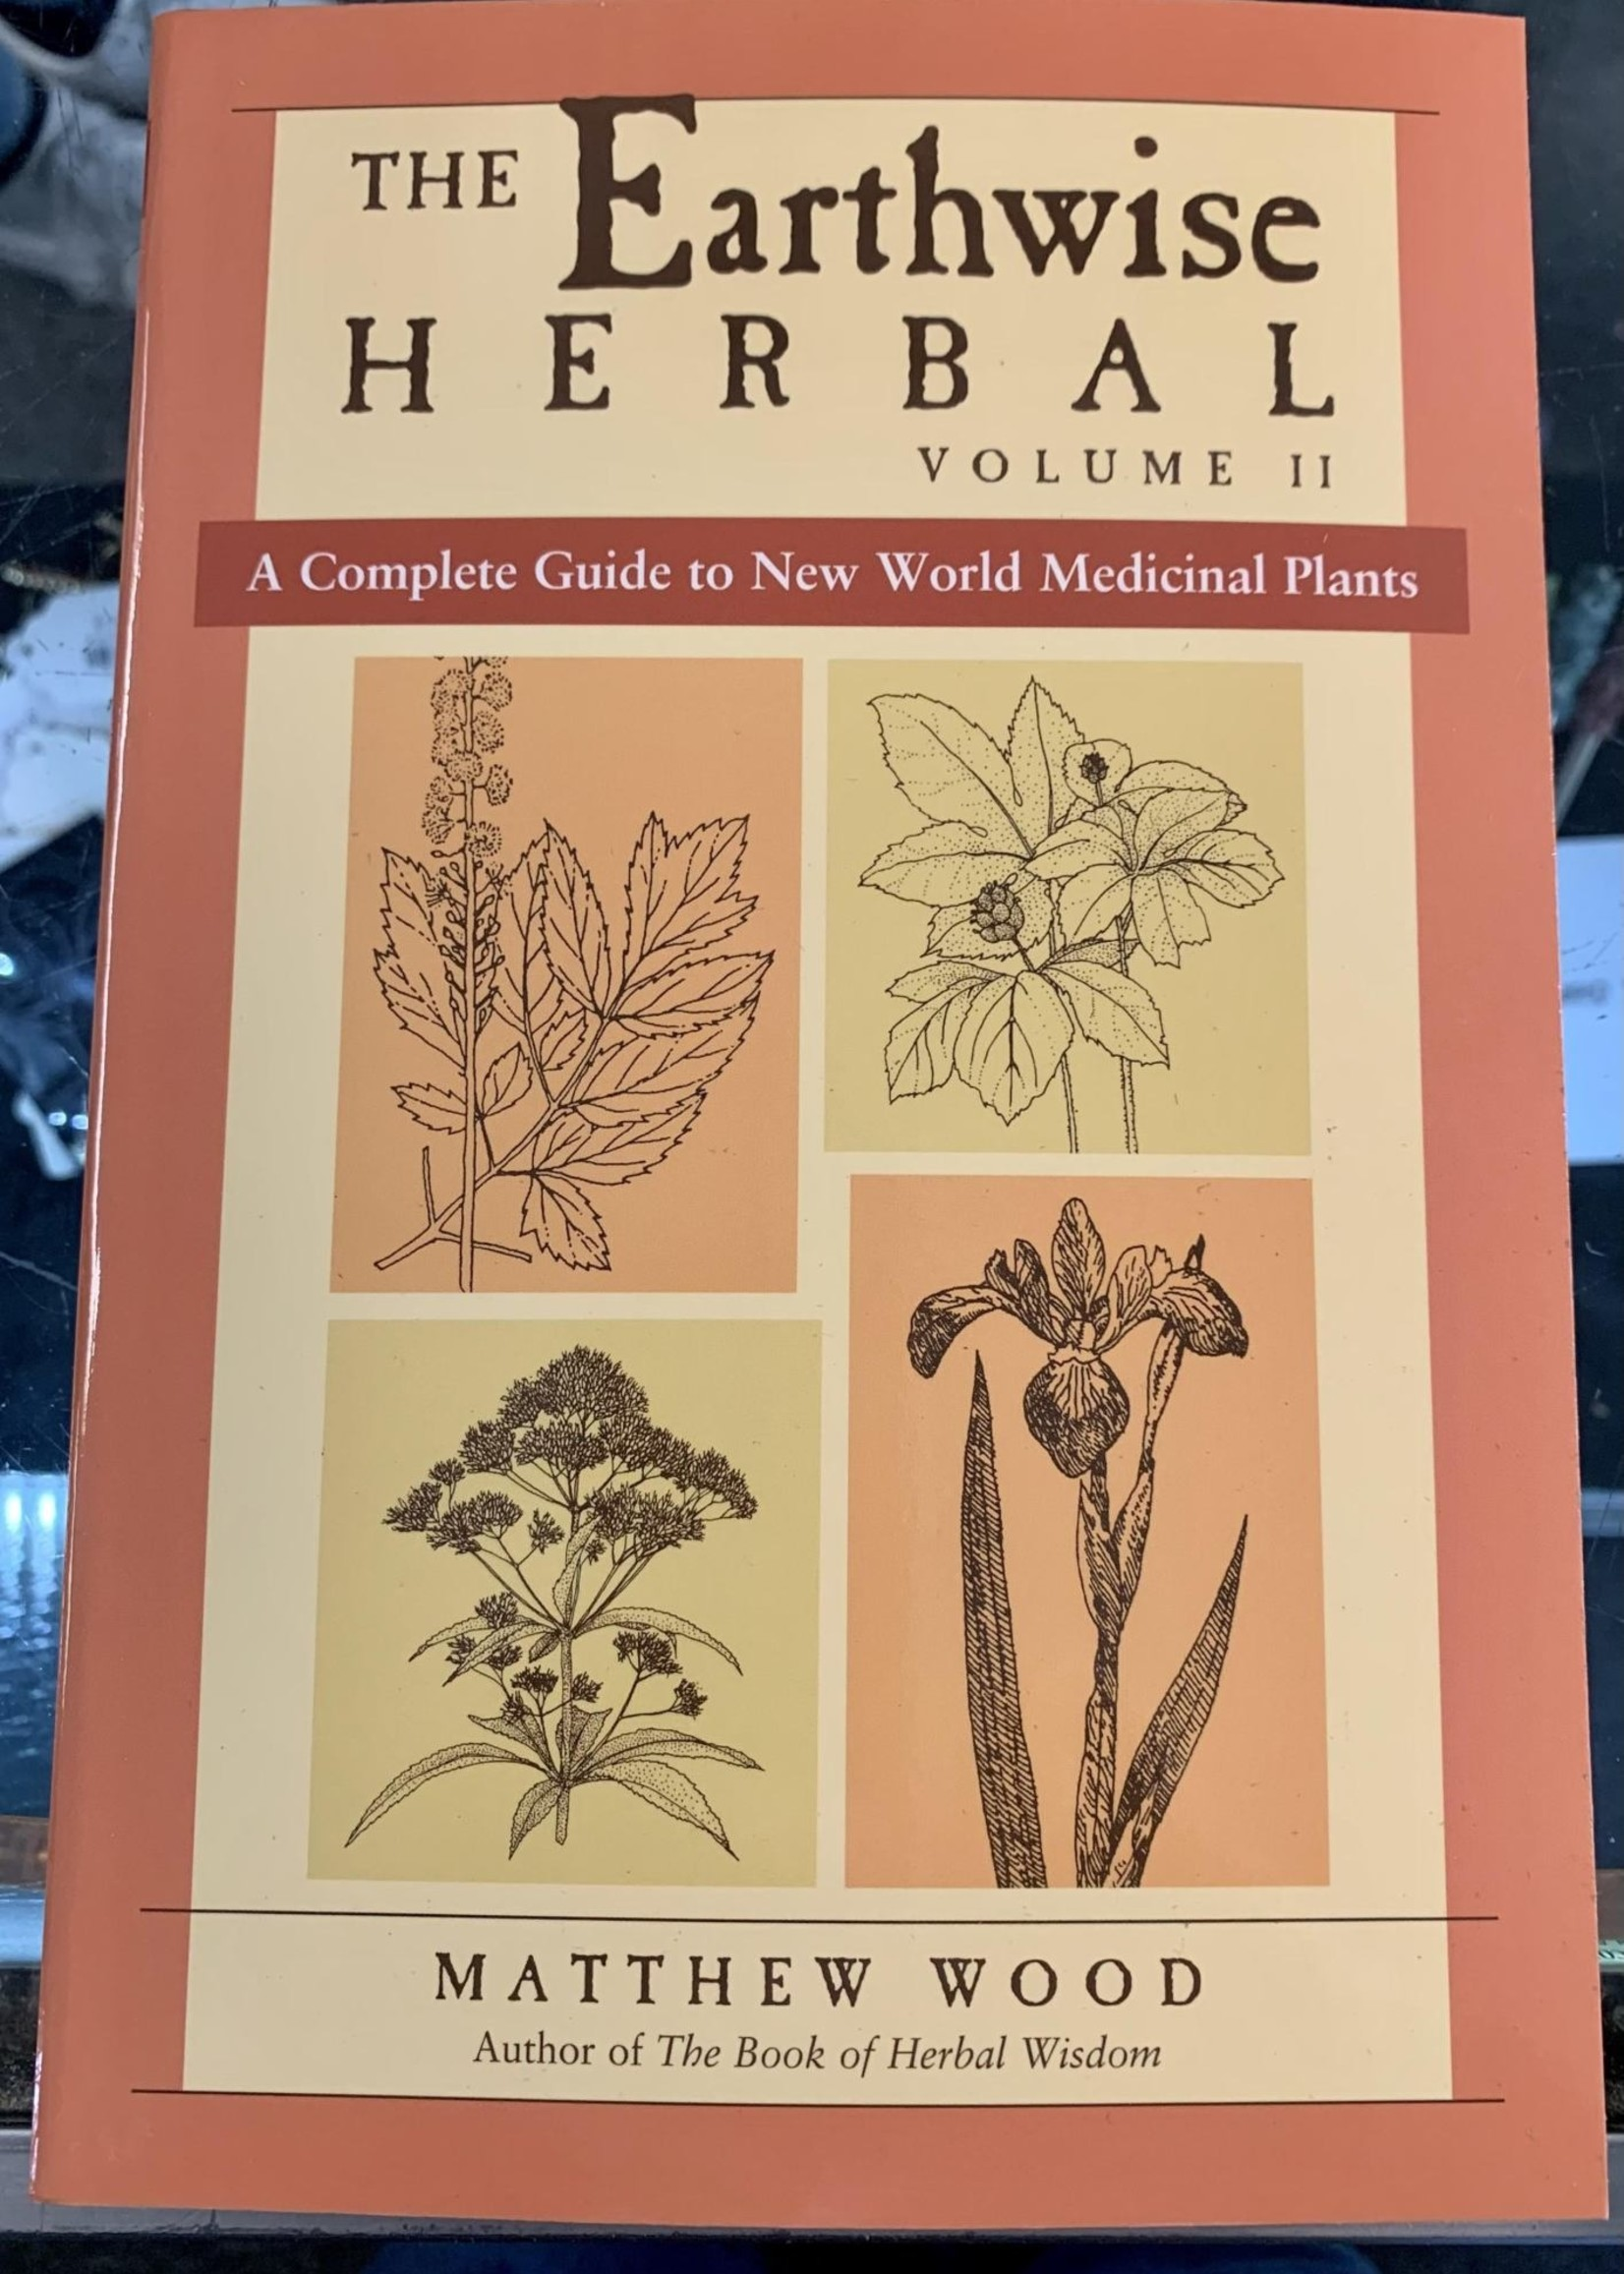 The Earthwise Herbal, Volume II A COMPLETE GUIDE TO NEW WORLD MEDICINAL PLANTS - By MATTHEW WOOD